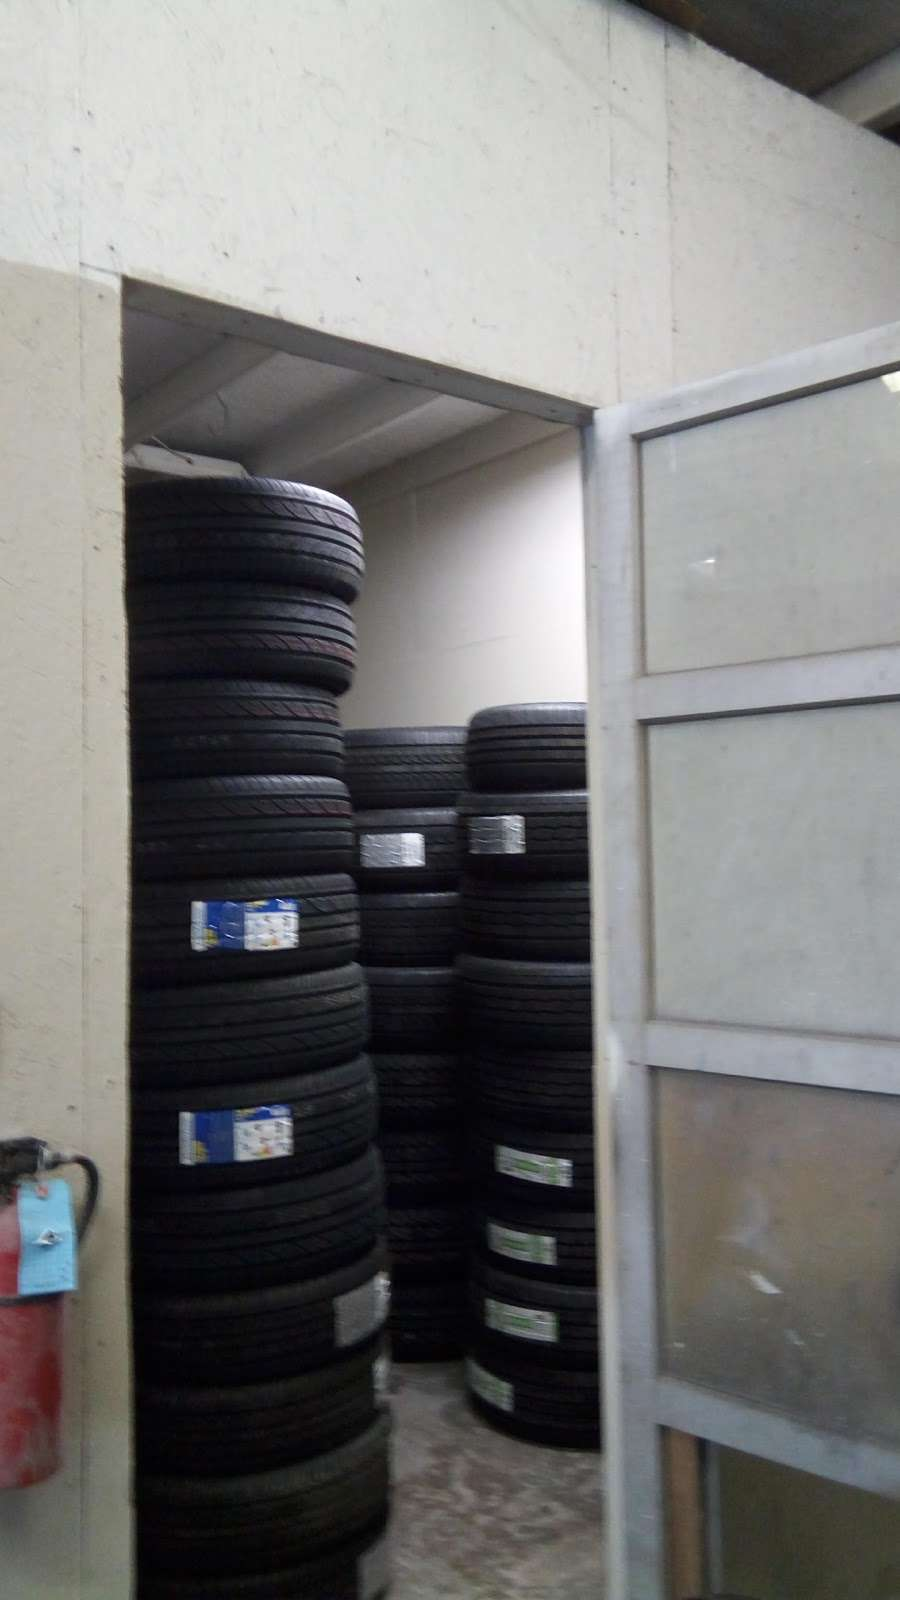 Used And New Tires Erasmo Pena - car repair  | Photo 8 of 10 | Address: 17499 Old Stage Coach Rd, Dumfries, VA 22026, USA | Phone: (571) 205-9575